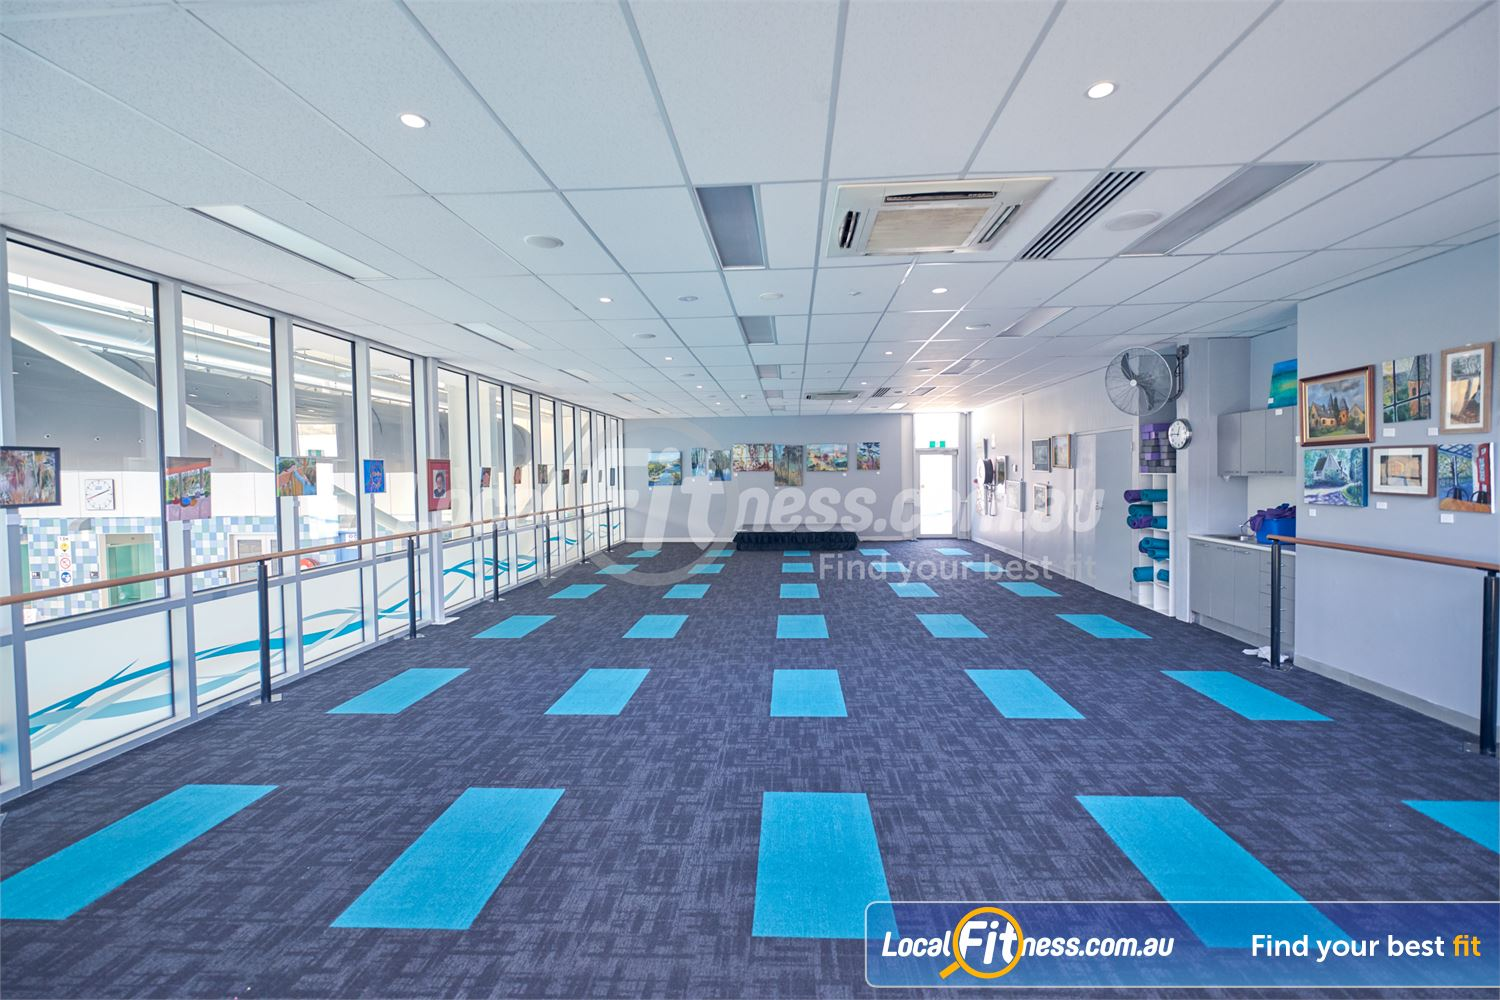 Eltham Leisure Centre Near Research Dedicated Yoga studio running Barre, Pilates and Eltham Yoga classes.